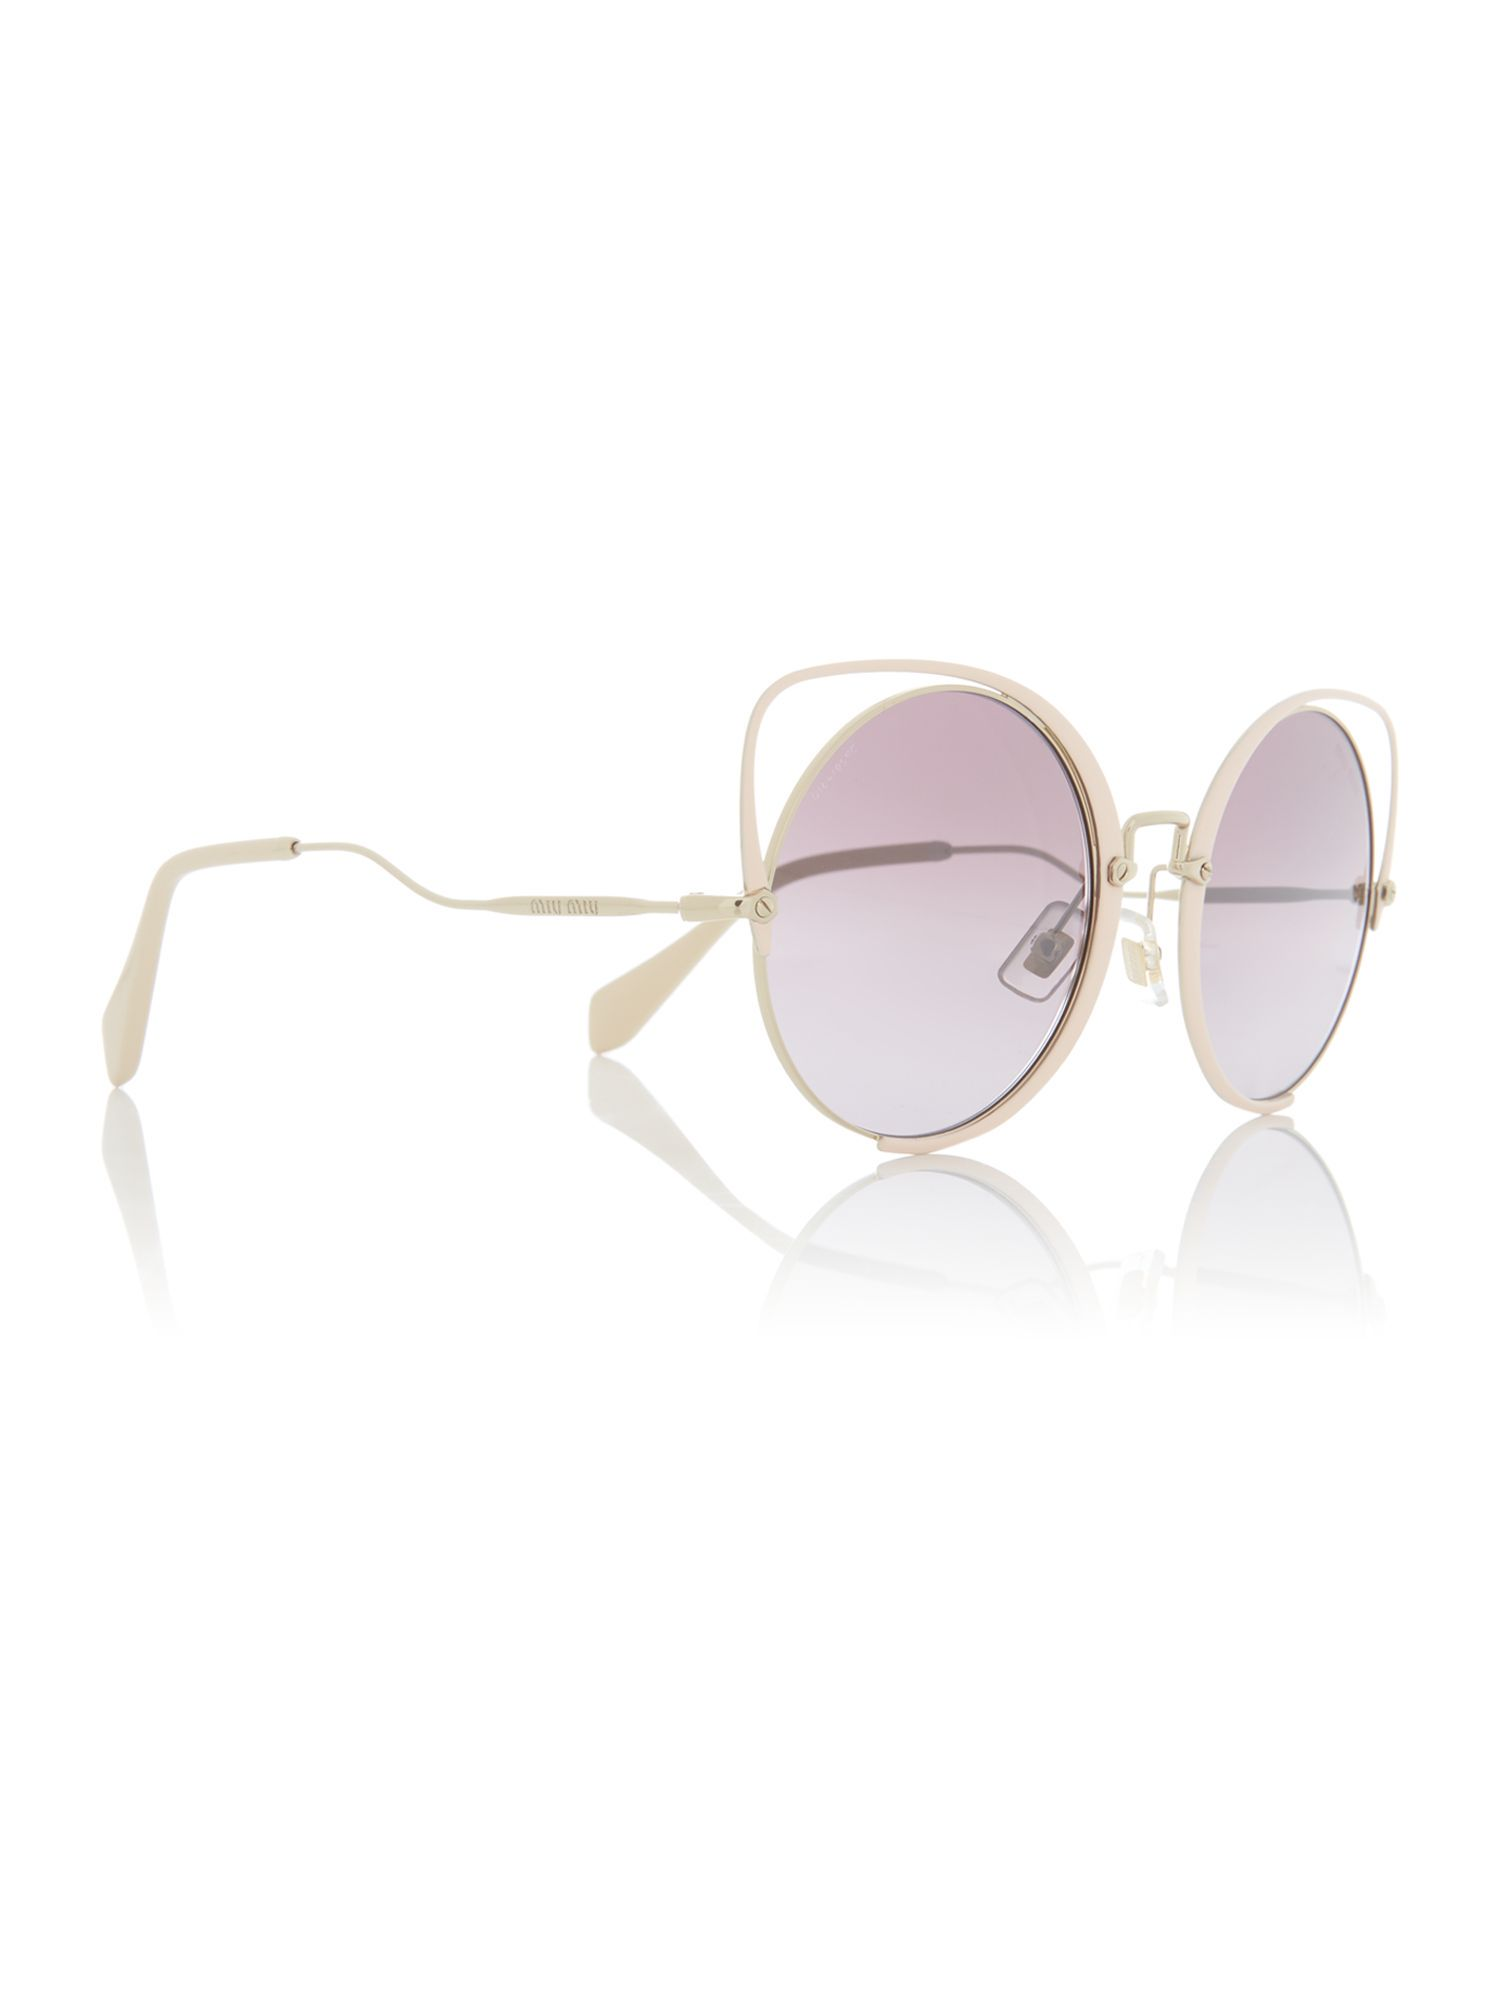 Sunglasses MIU МЮ